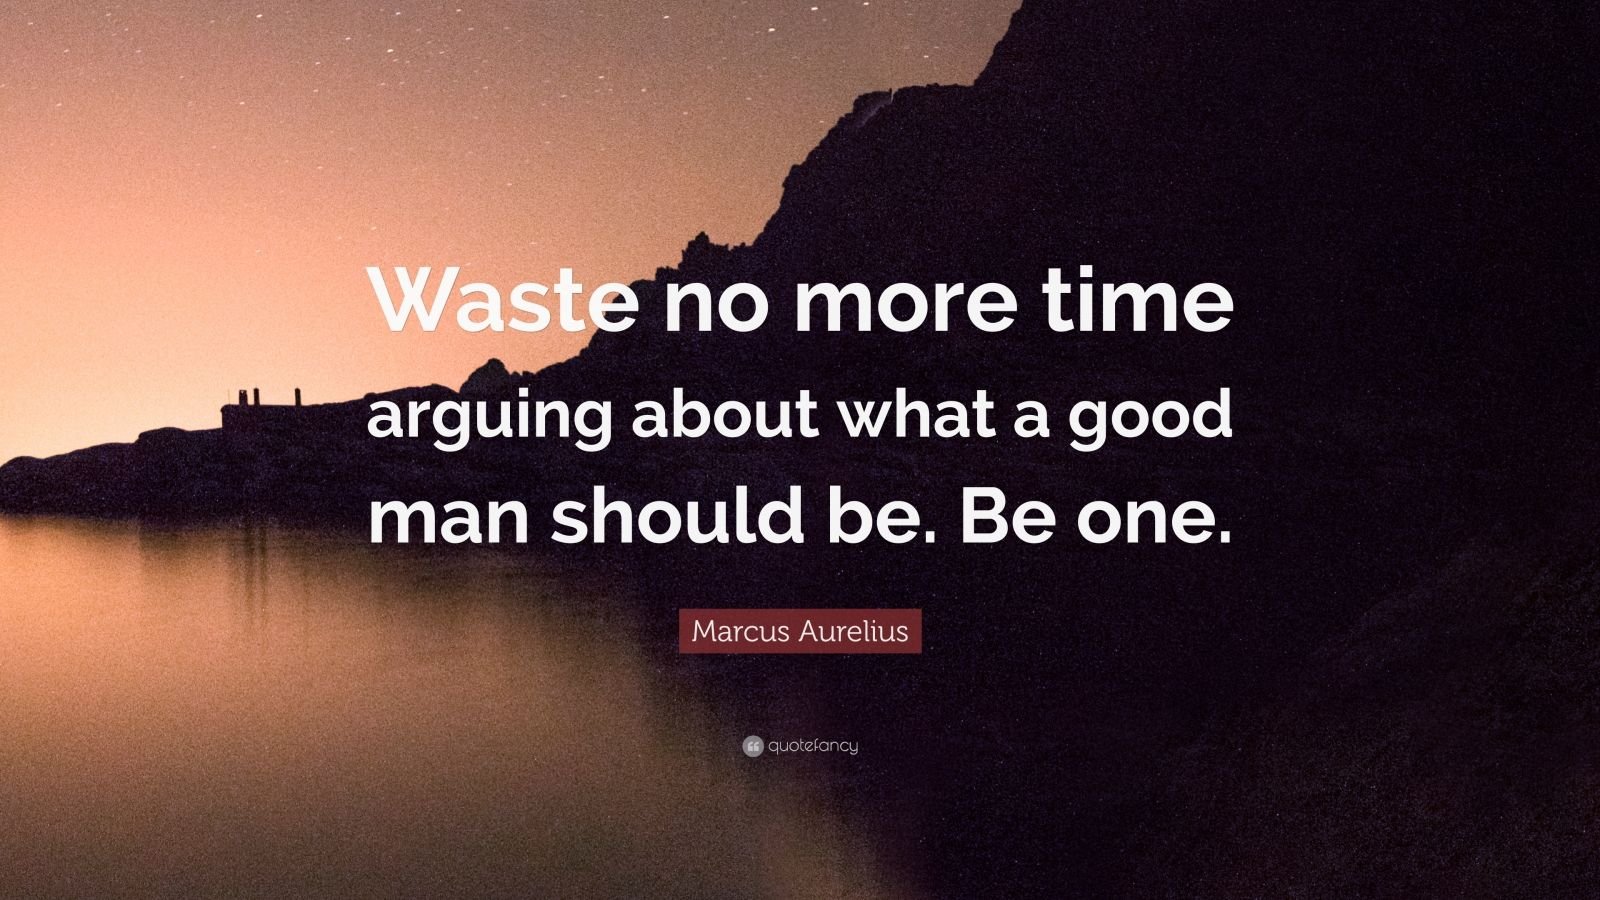 Be Should Marcus No Arguing Time About More One What Waste Good Be Man Aurelius